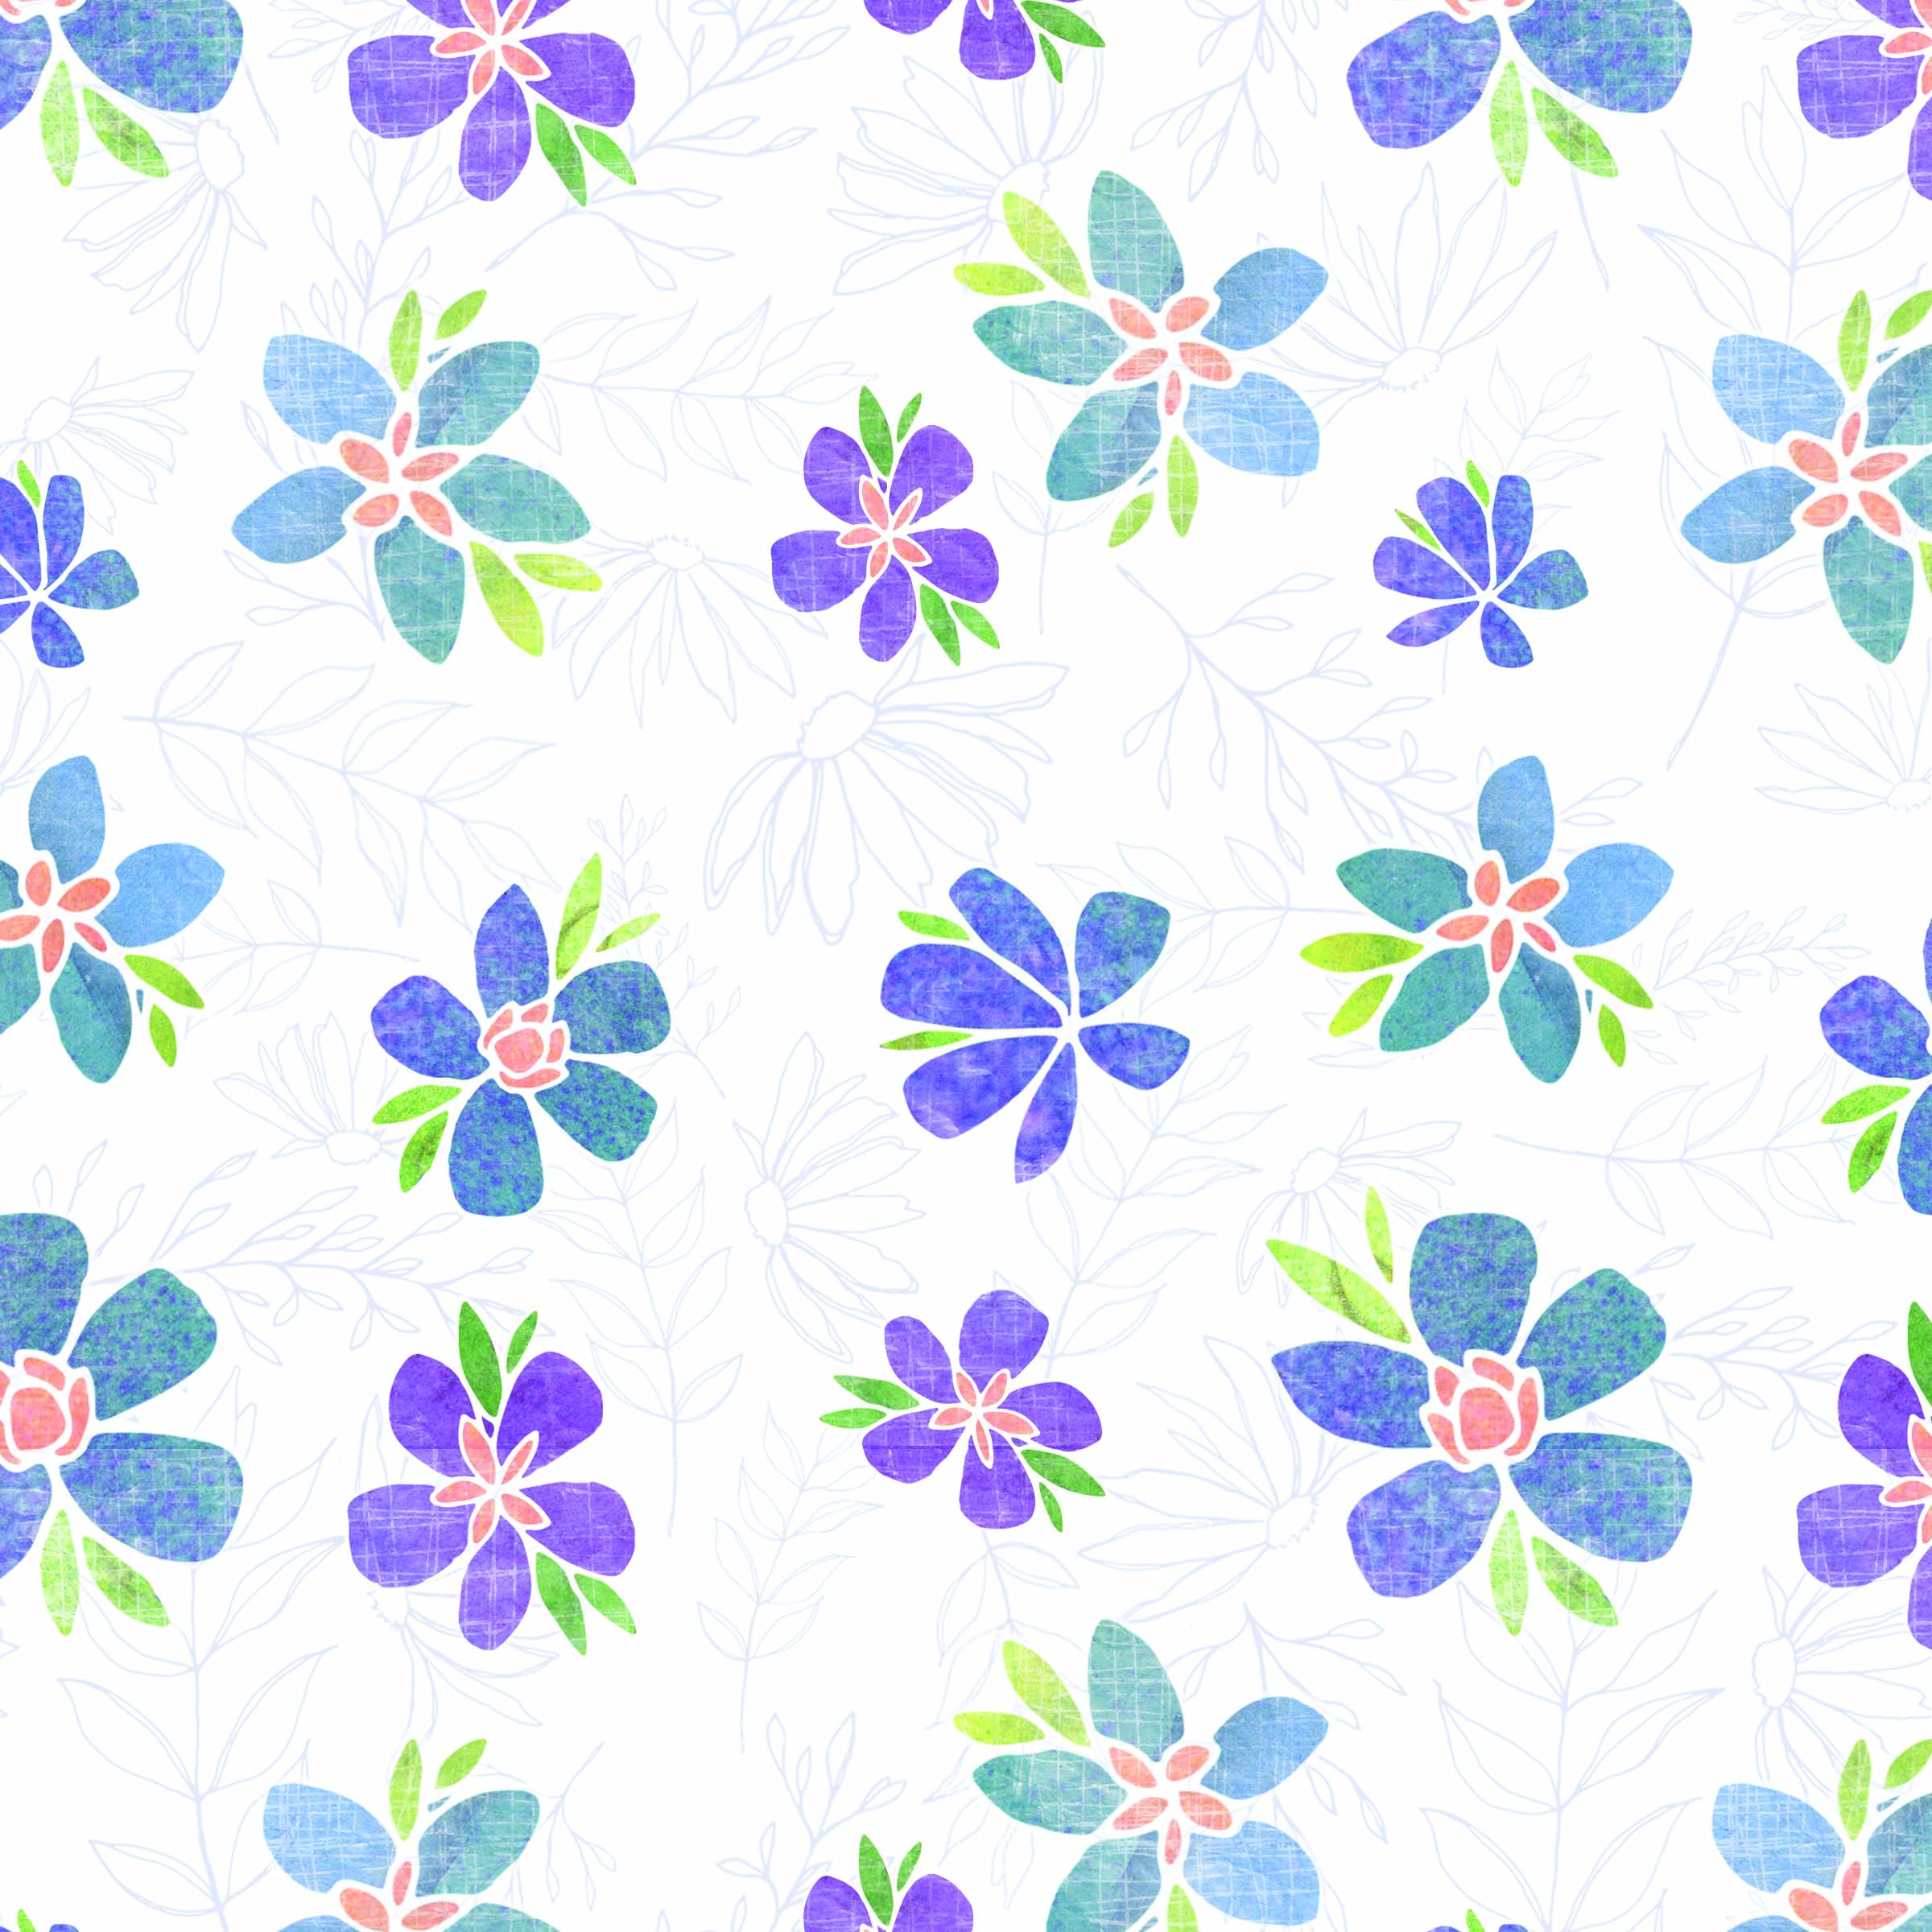 blue flower pattern.jpg